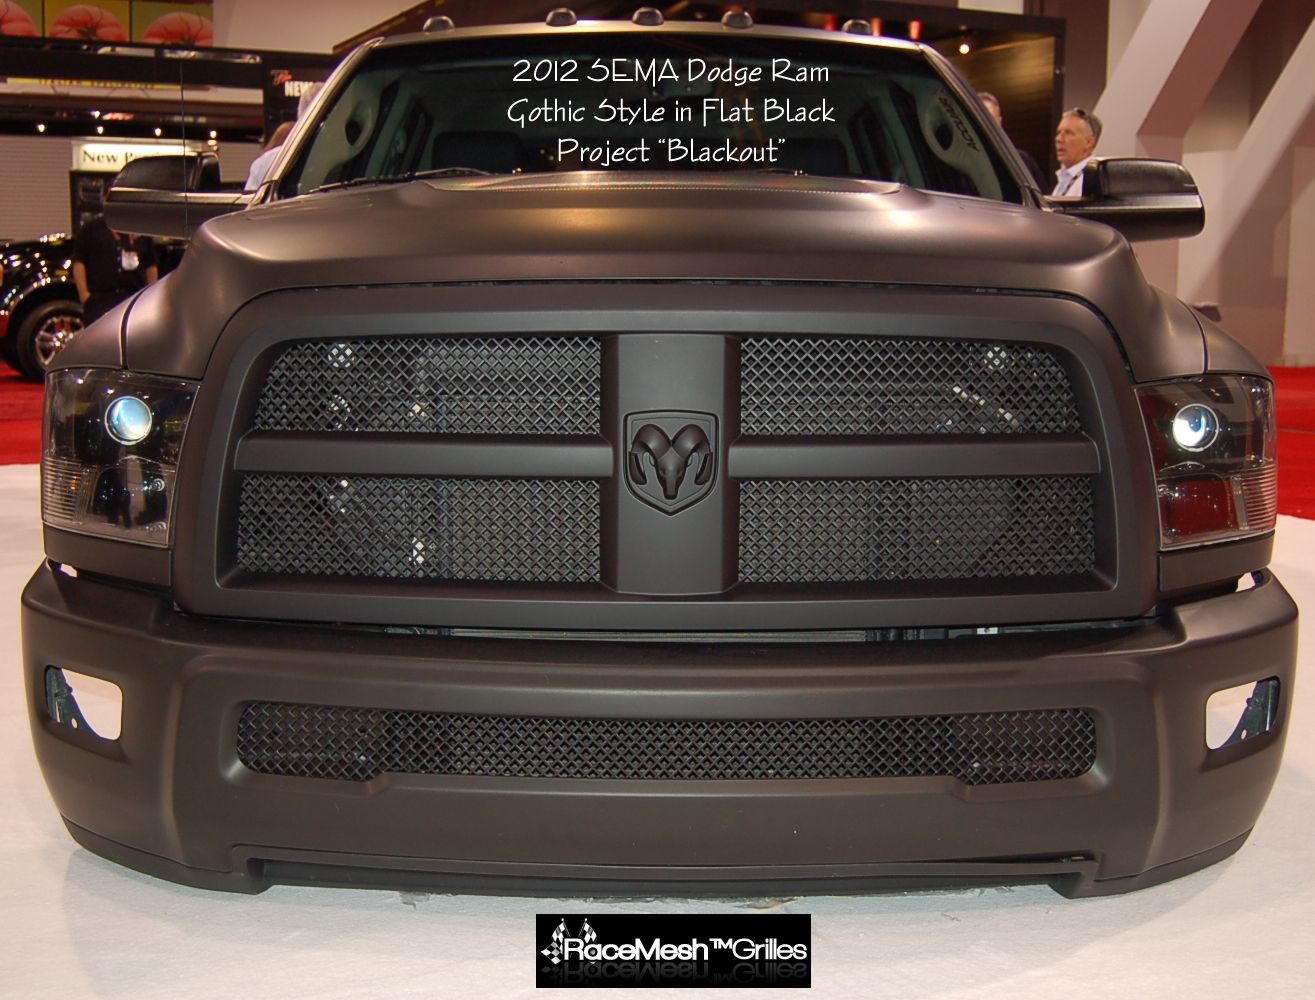 Pin By Racemesh Grilles On Trucks Ram Trucks 1500 Dodge Ram 1500 Accessories Dodge Trucks Ram